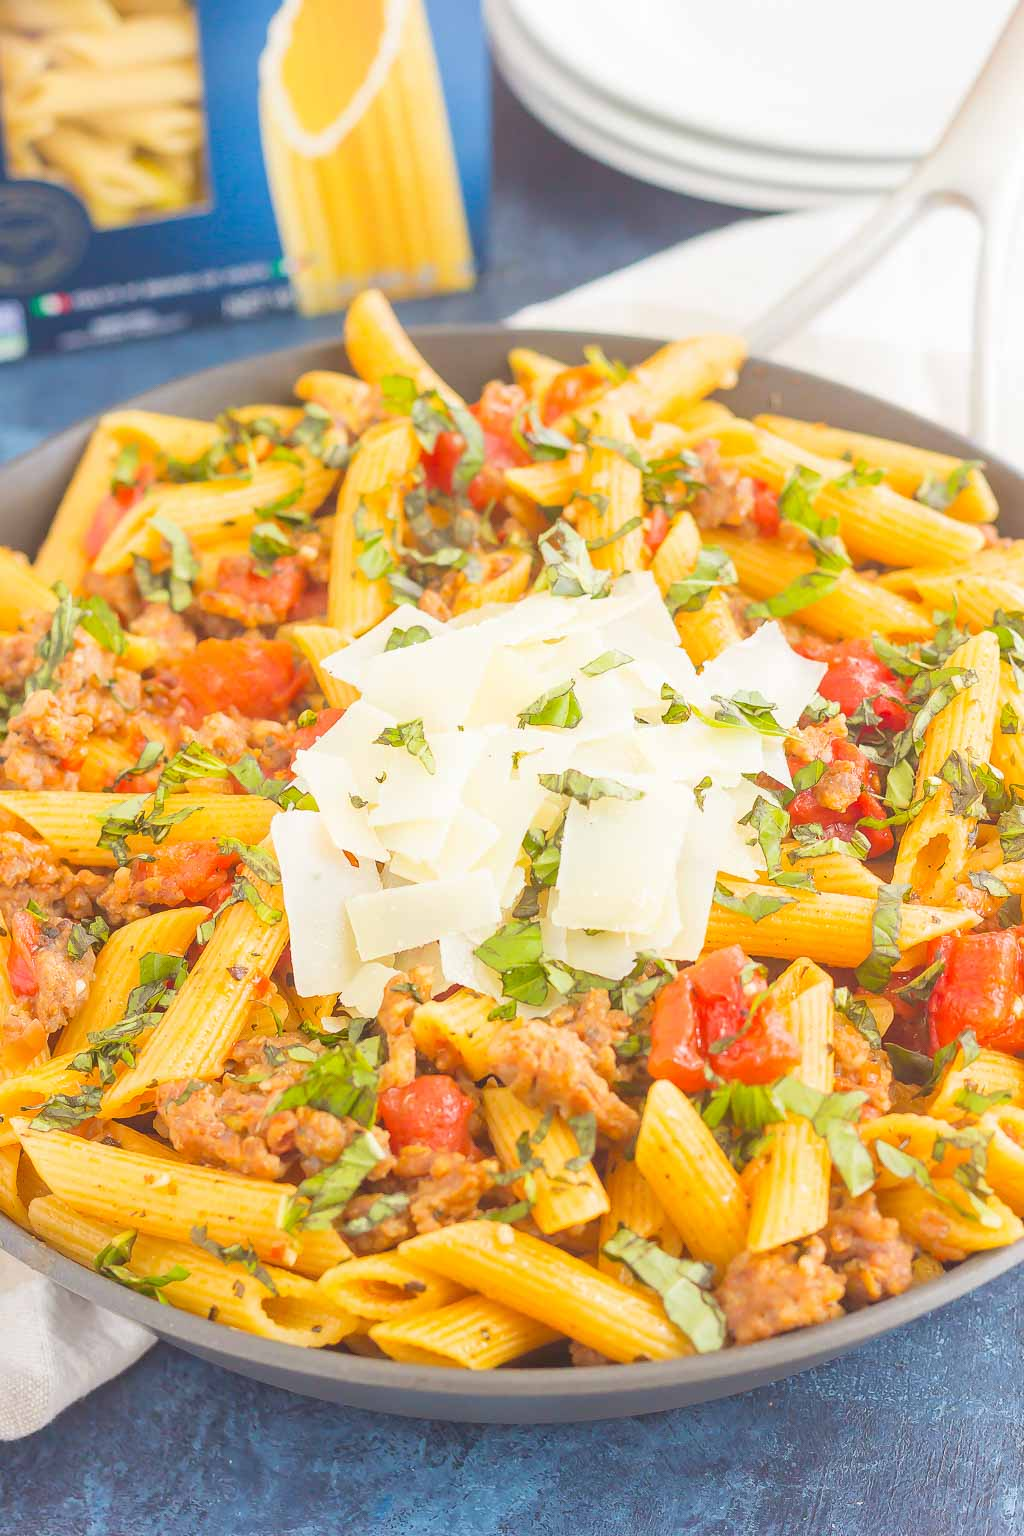 tomato basil pasta with italian sausage in large bowl